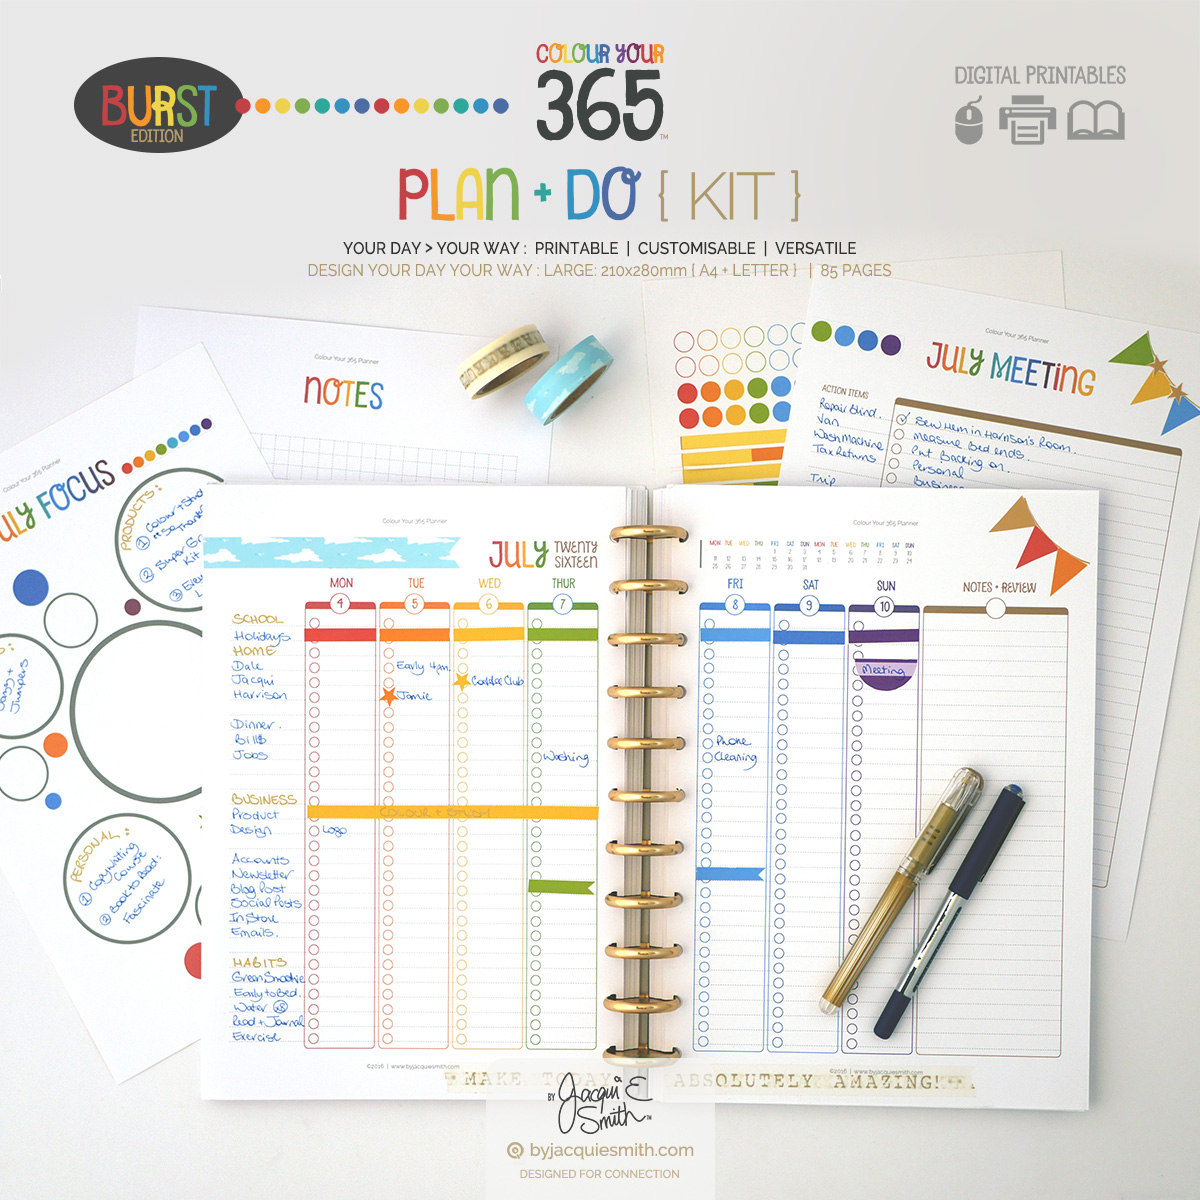 Colour Your 365 Burst Edition Plan + Do planner printables at byjacquiesmith.com